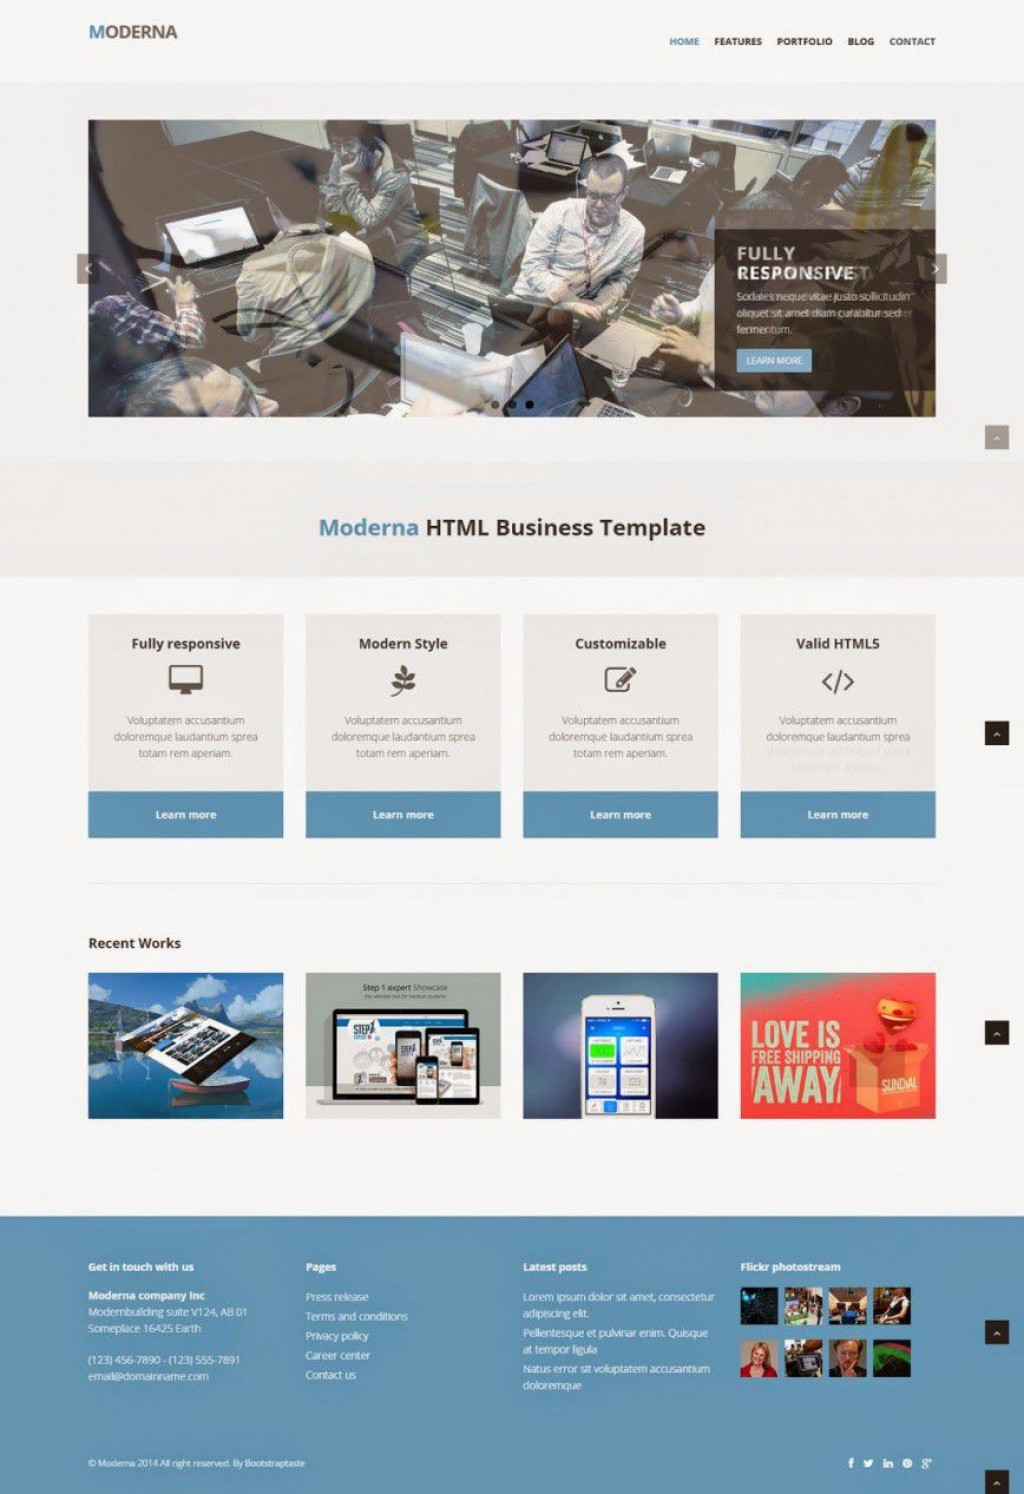 007 Surprising Free Busines Website Template Download Html And Cs Jquery Image  Responsive For It CompanyLarge